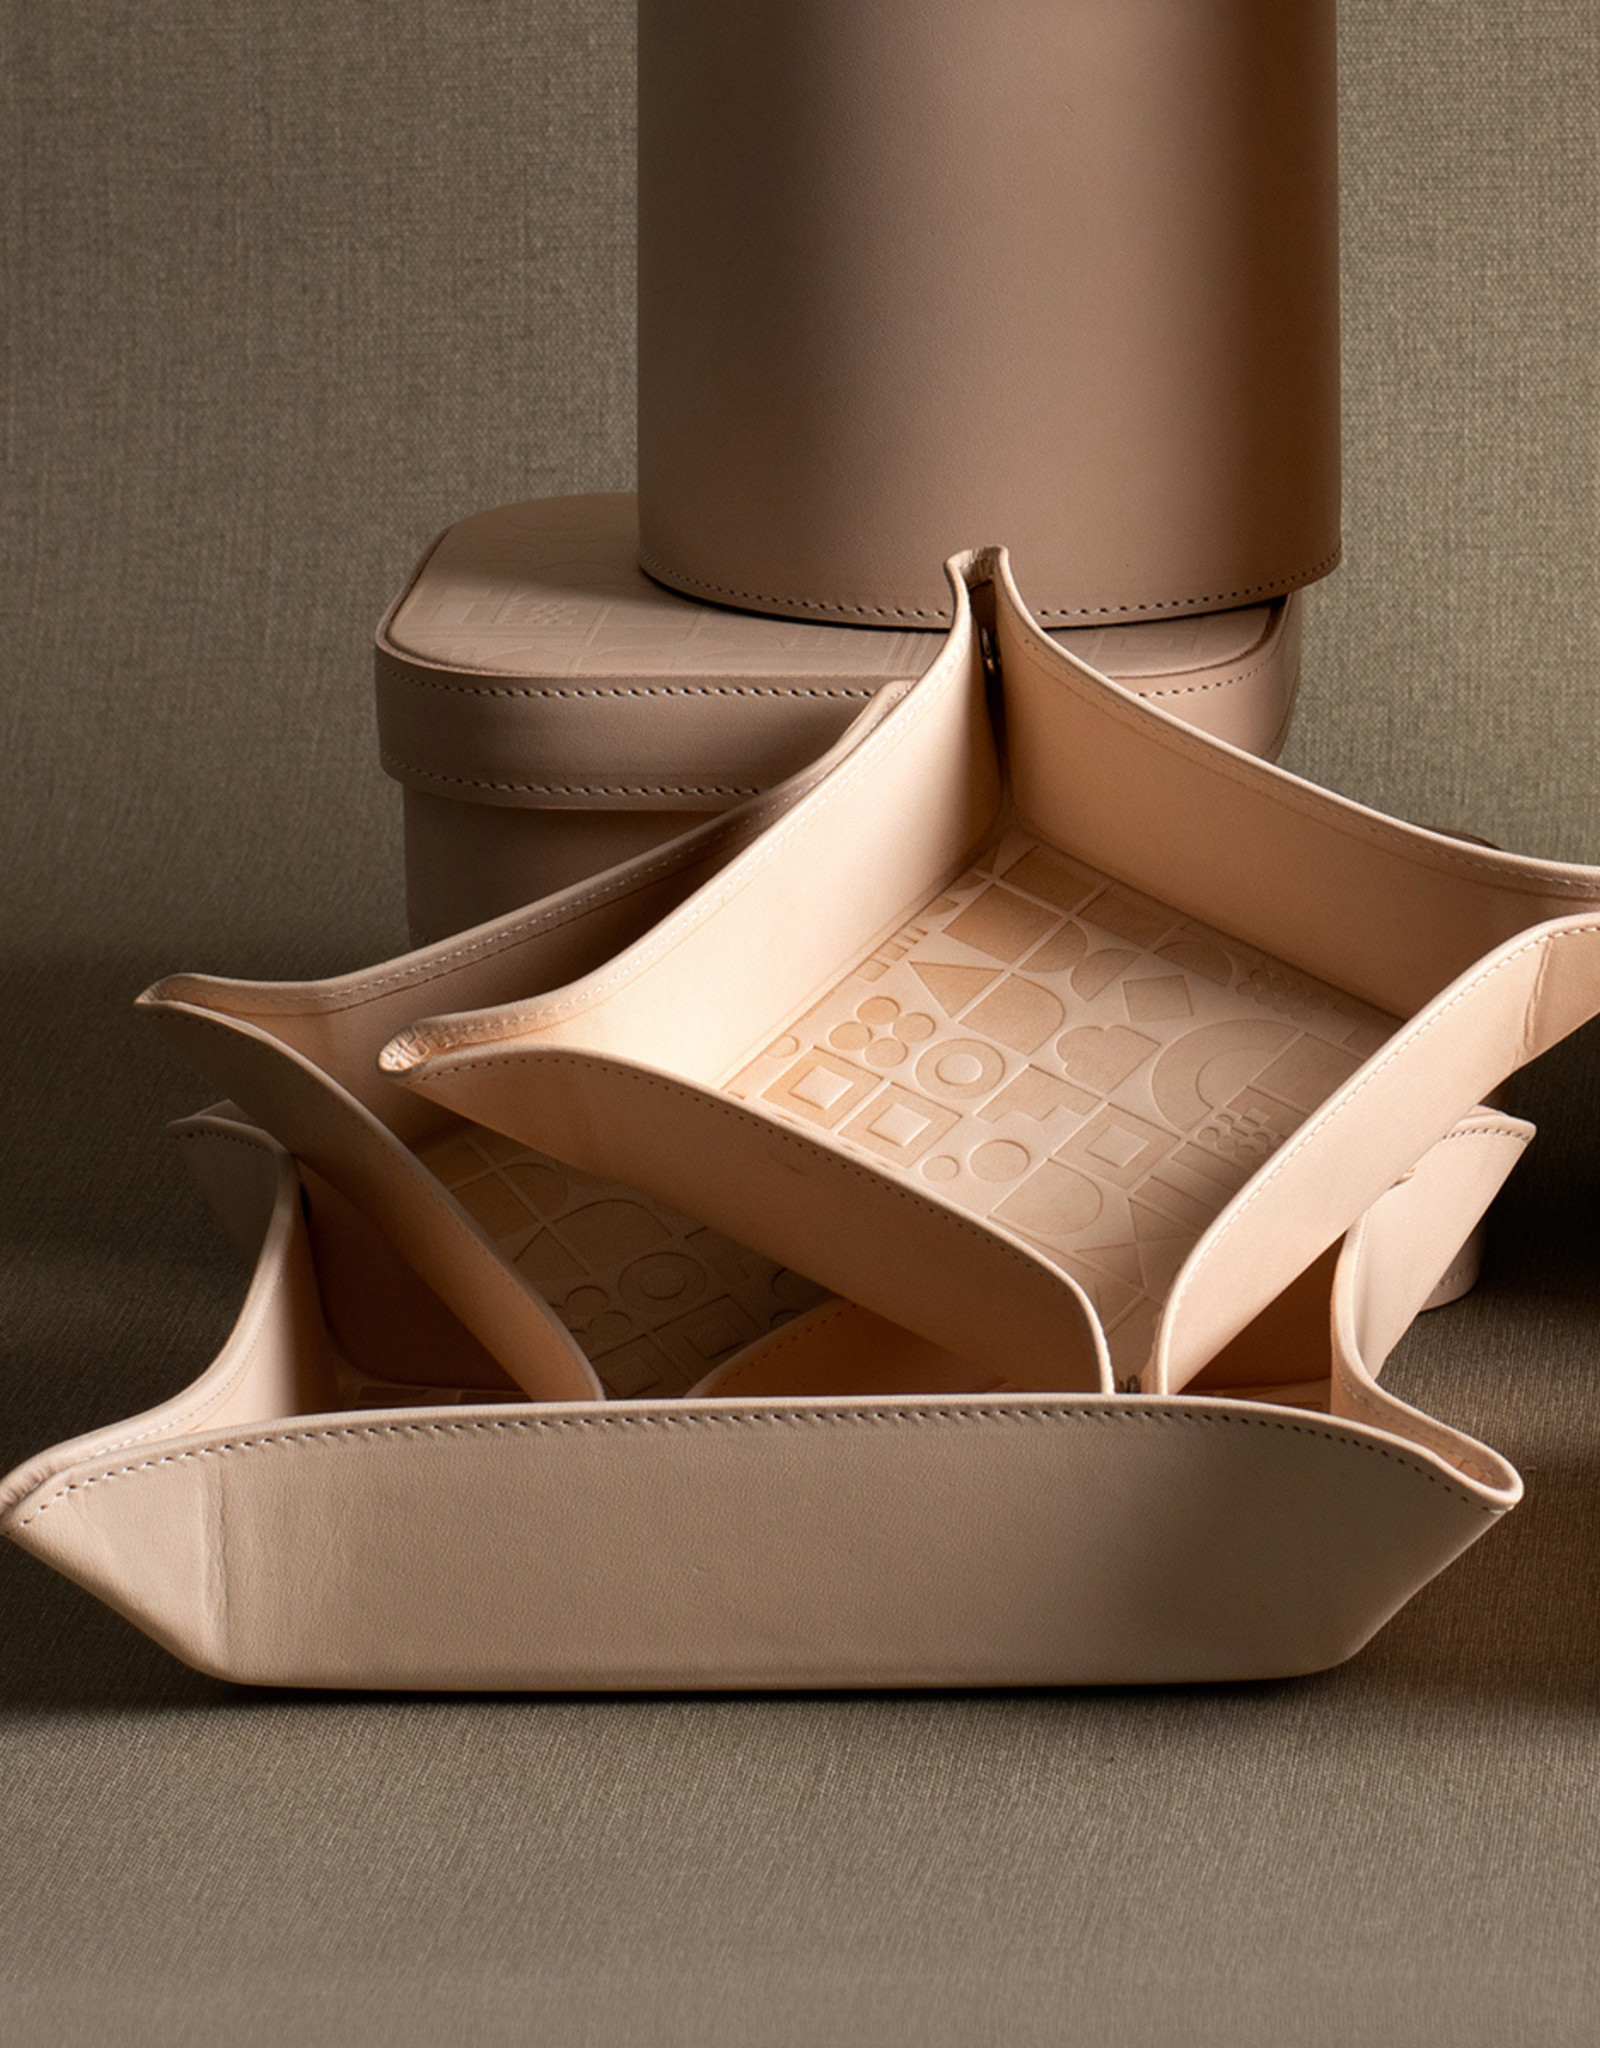 Medium Embossed Tray by Carl Cavallius for Palmgrens | Natural  leather